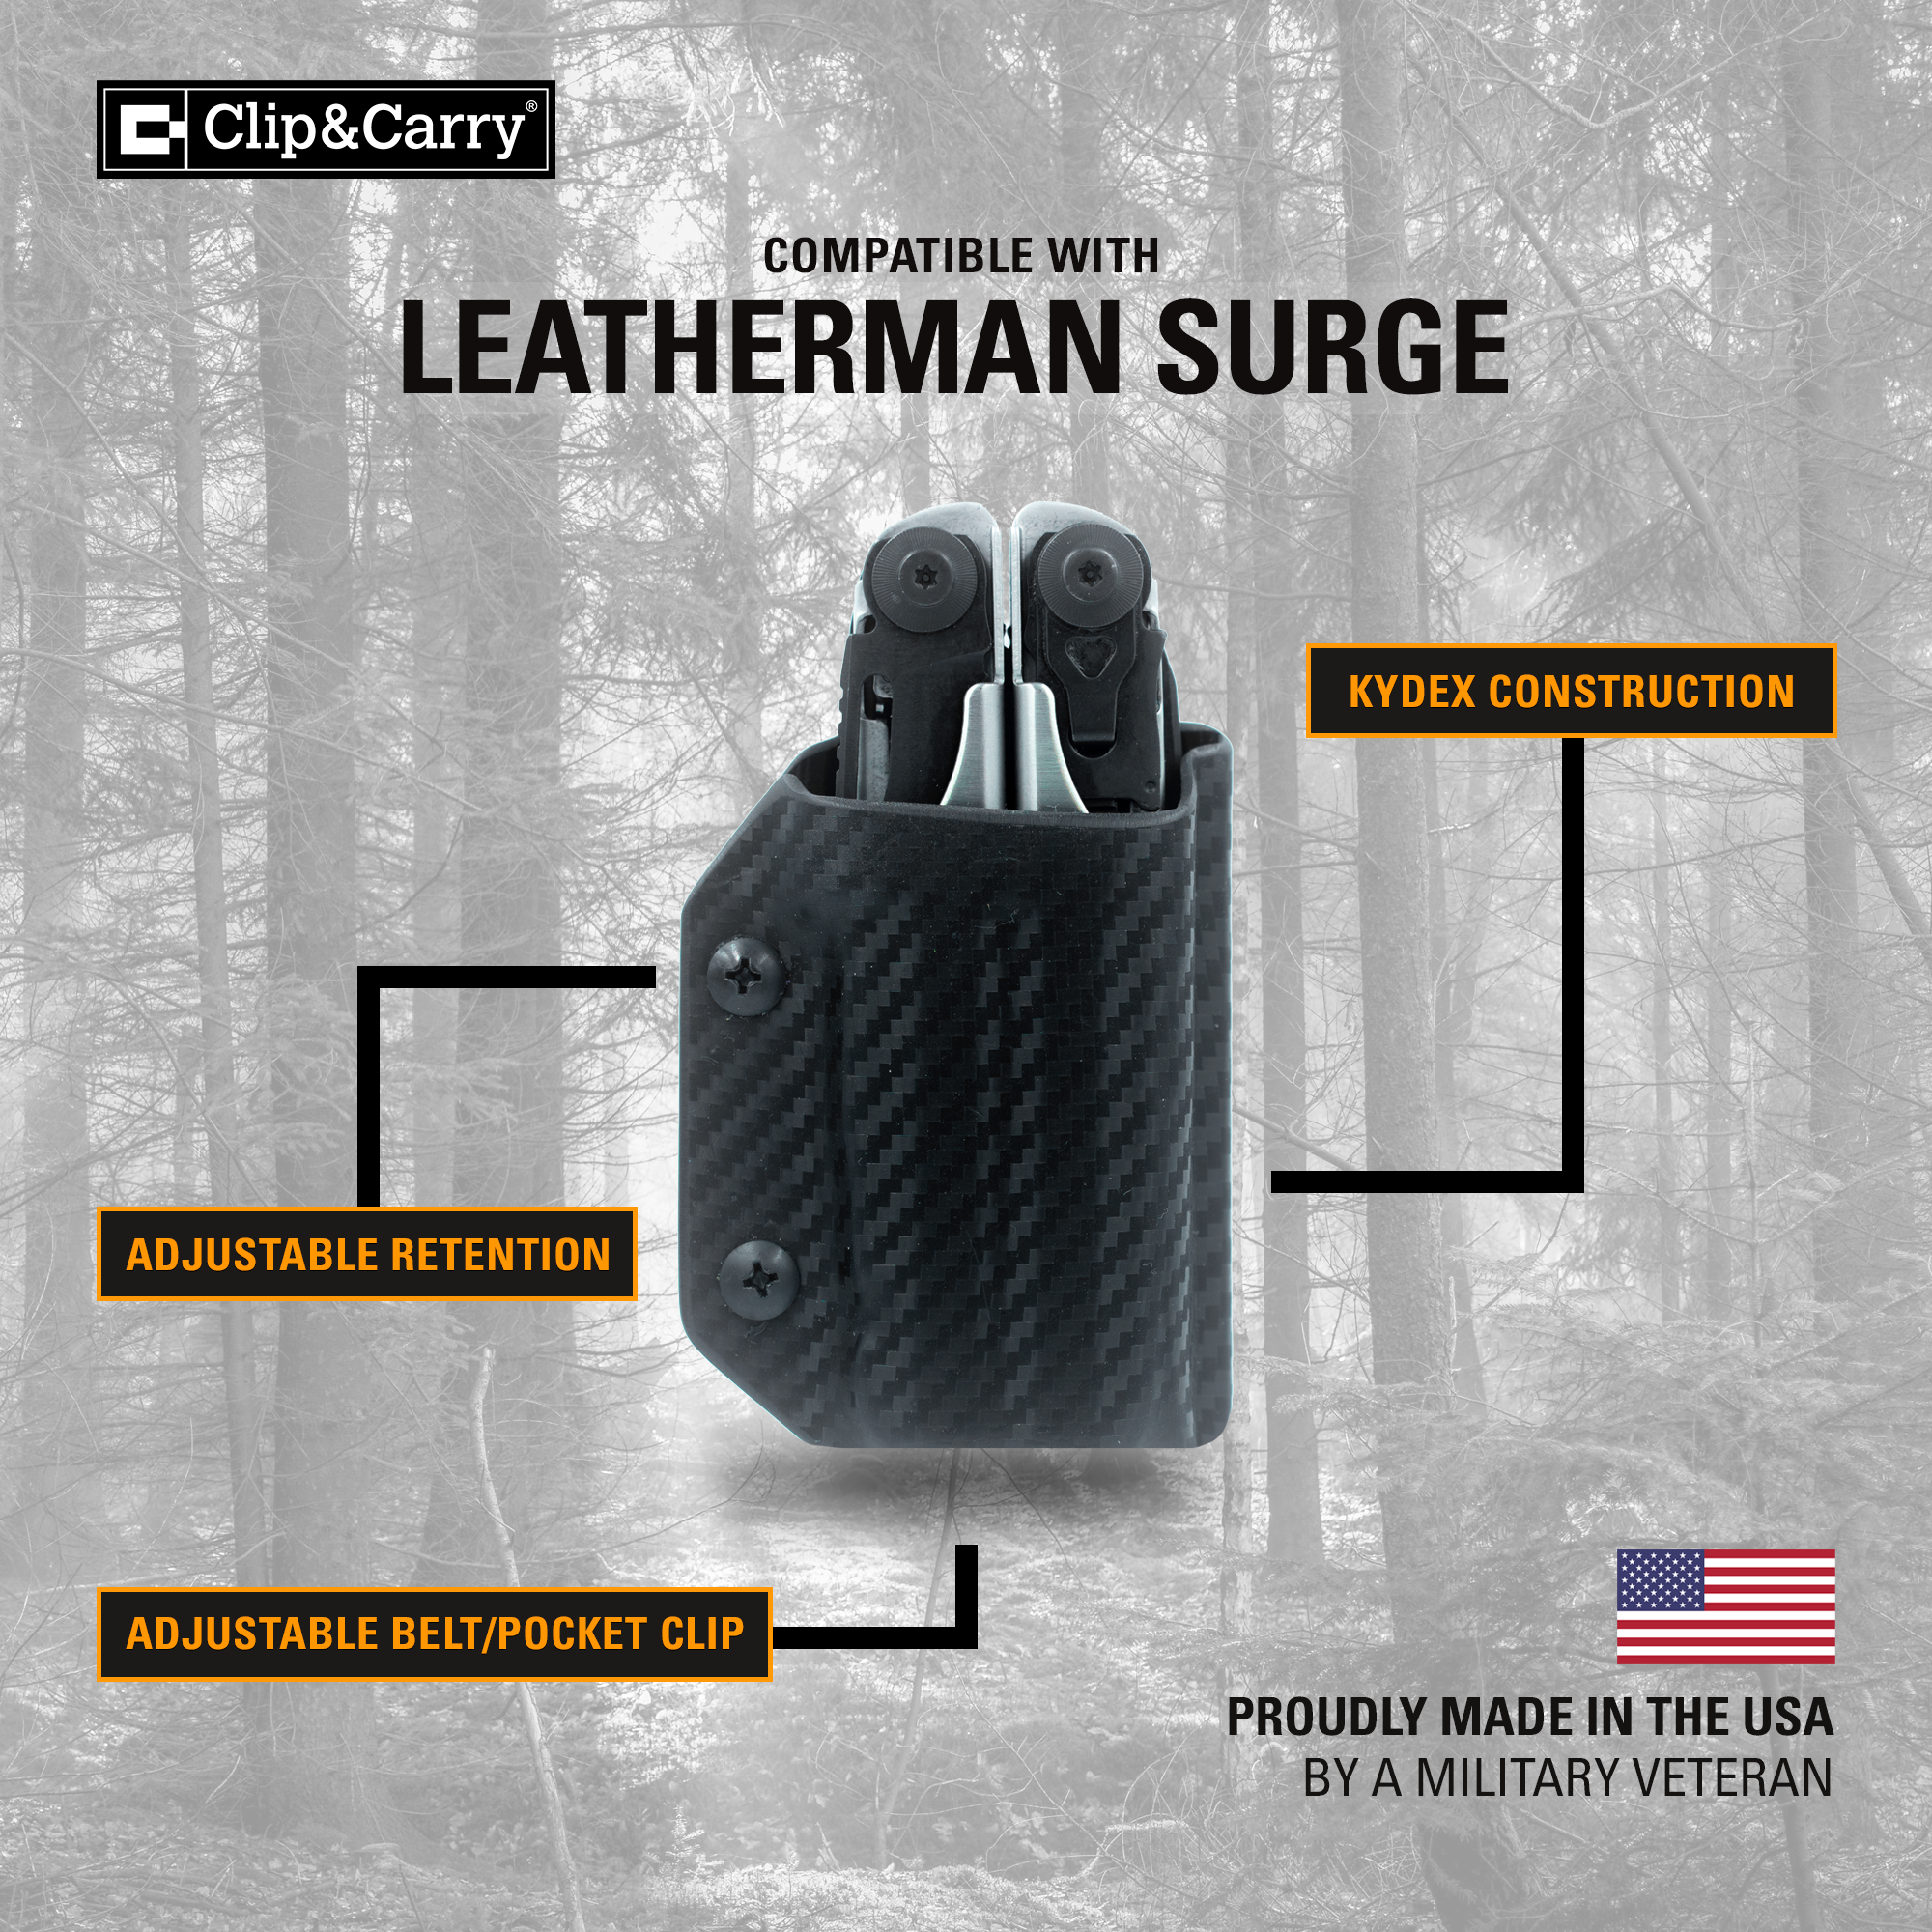 leathermansurge-2000x2000.png